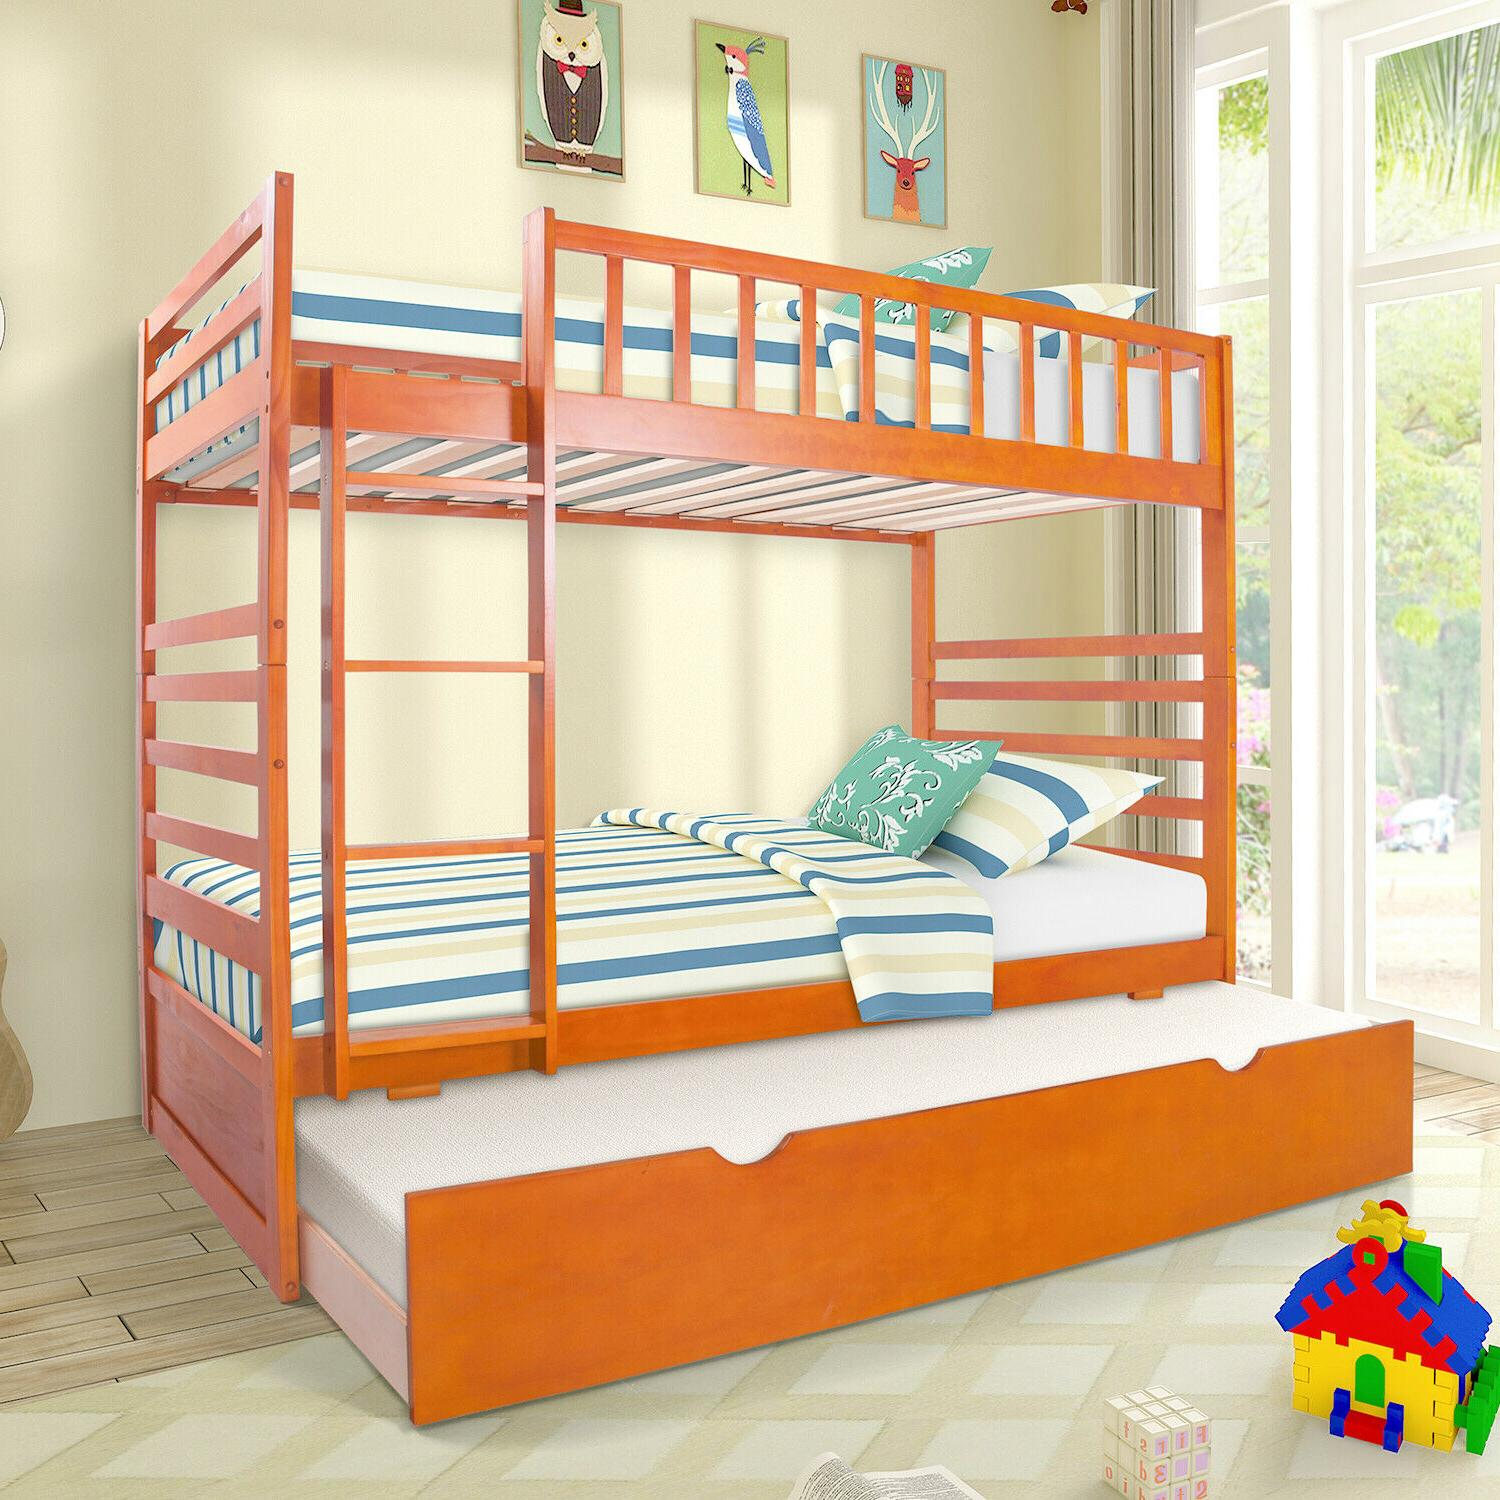 Wood Twin over Twin Bunk Bed Kids Wooden Bunk Beds with Trun